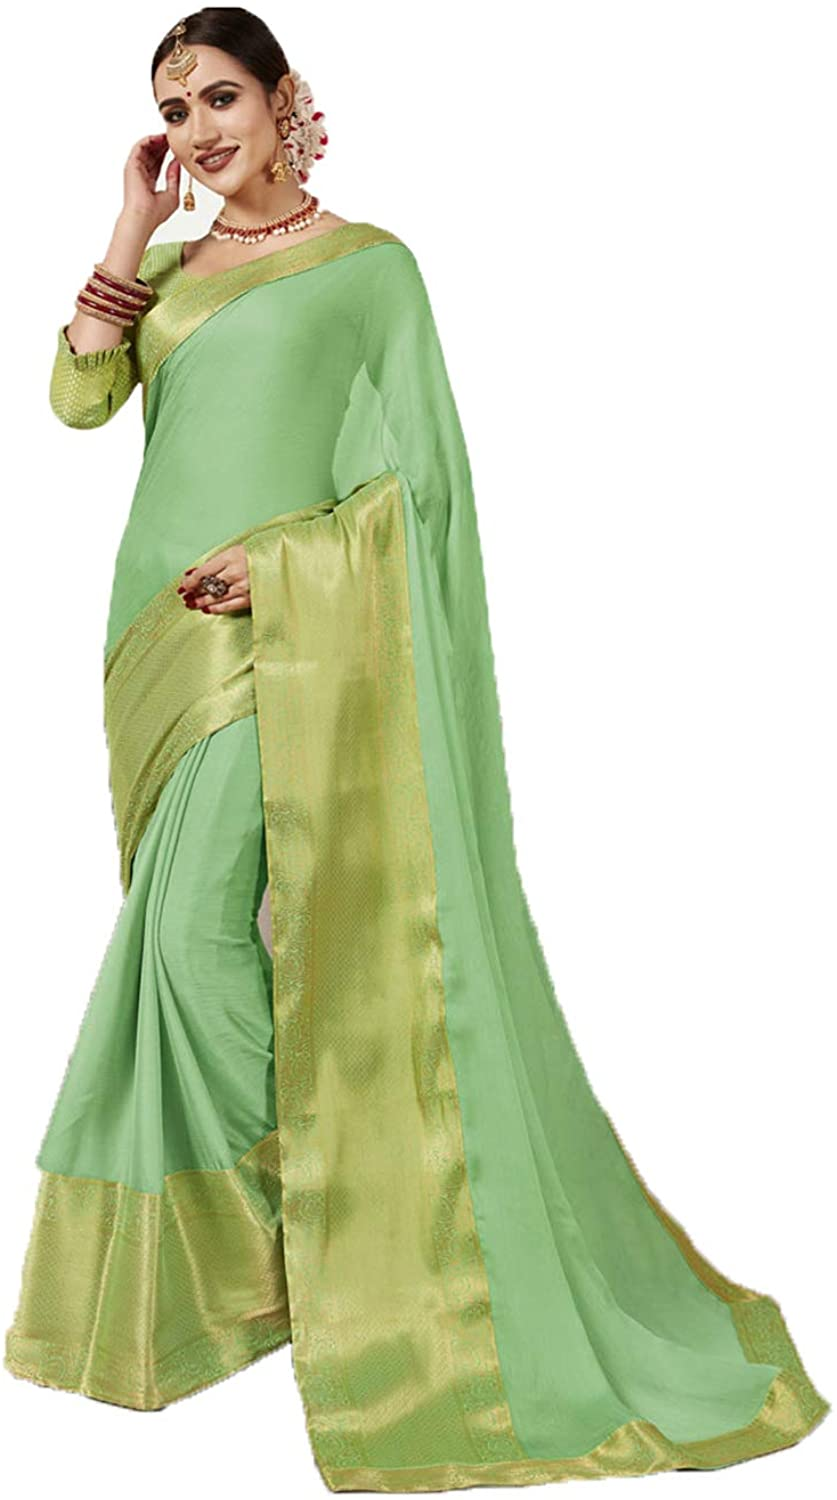 Saree for Women Bollywood Wedding Designer Green Sari with Unstitched Blouse. ICW2559-9